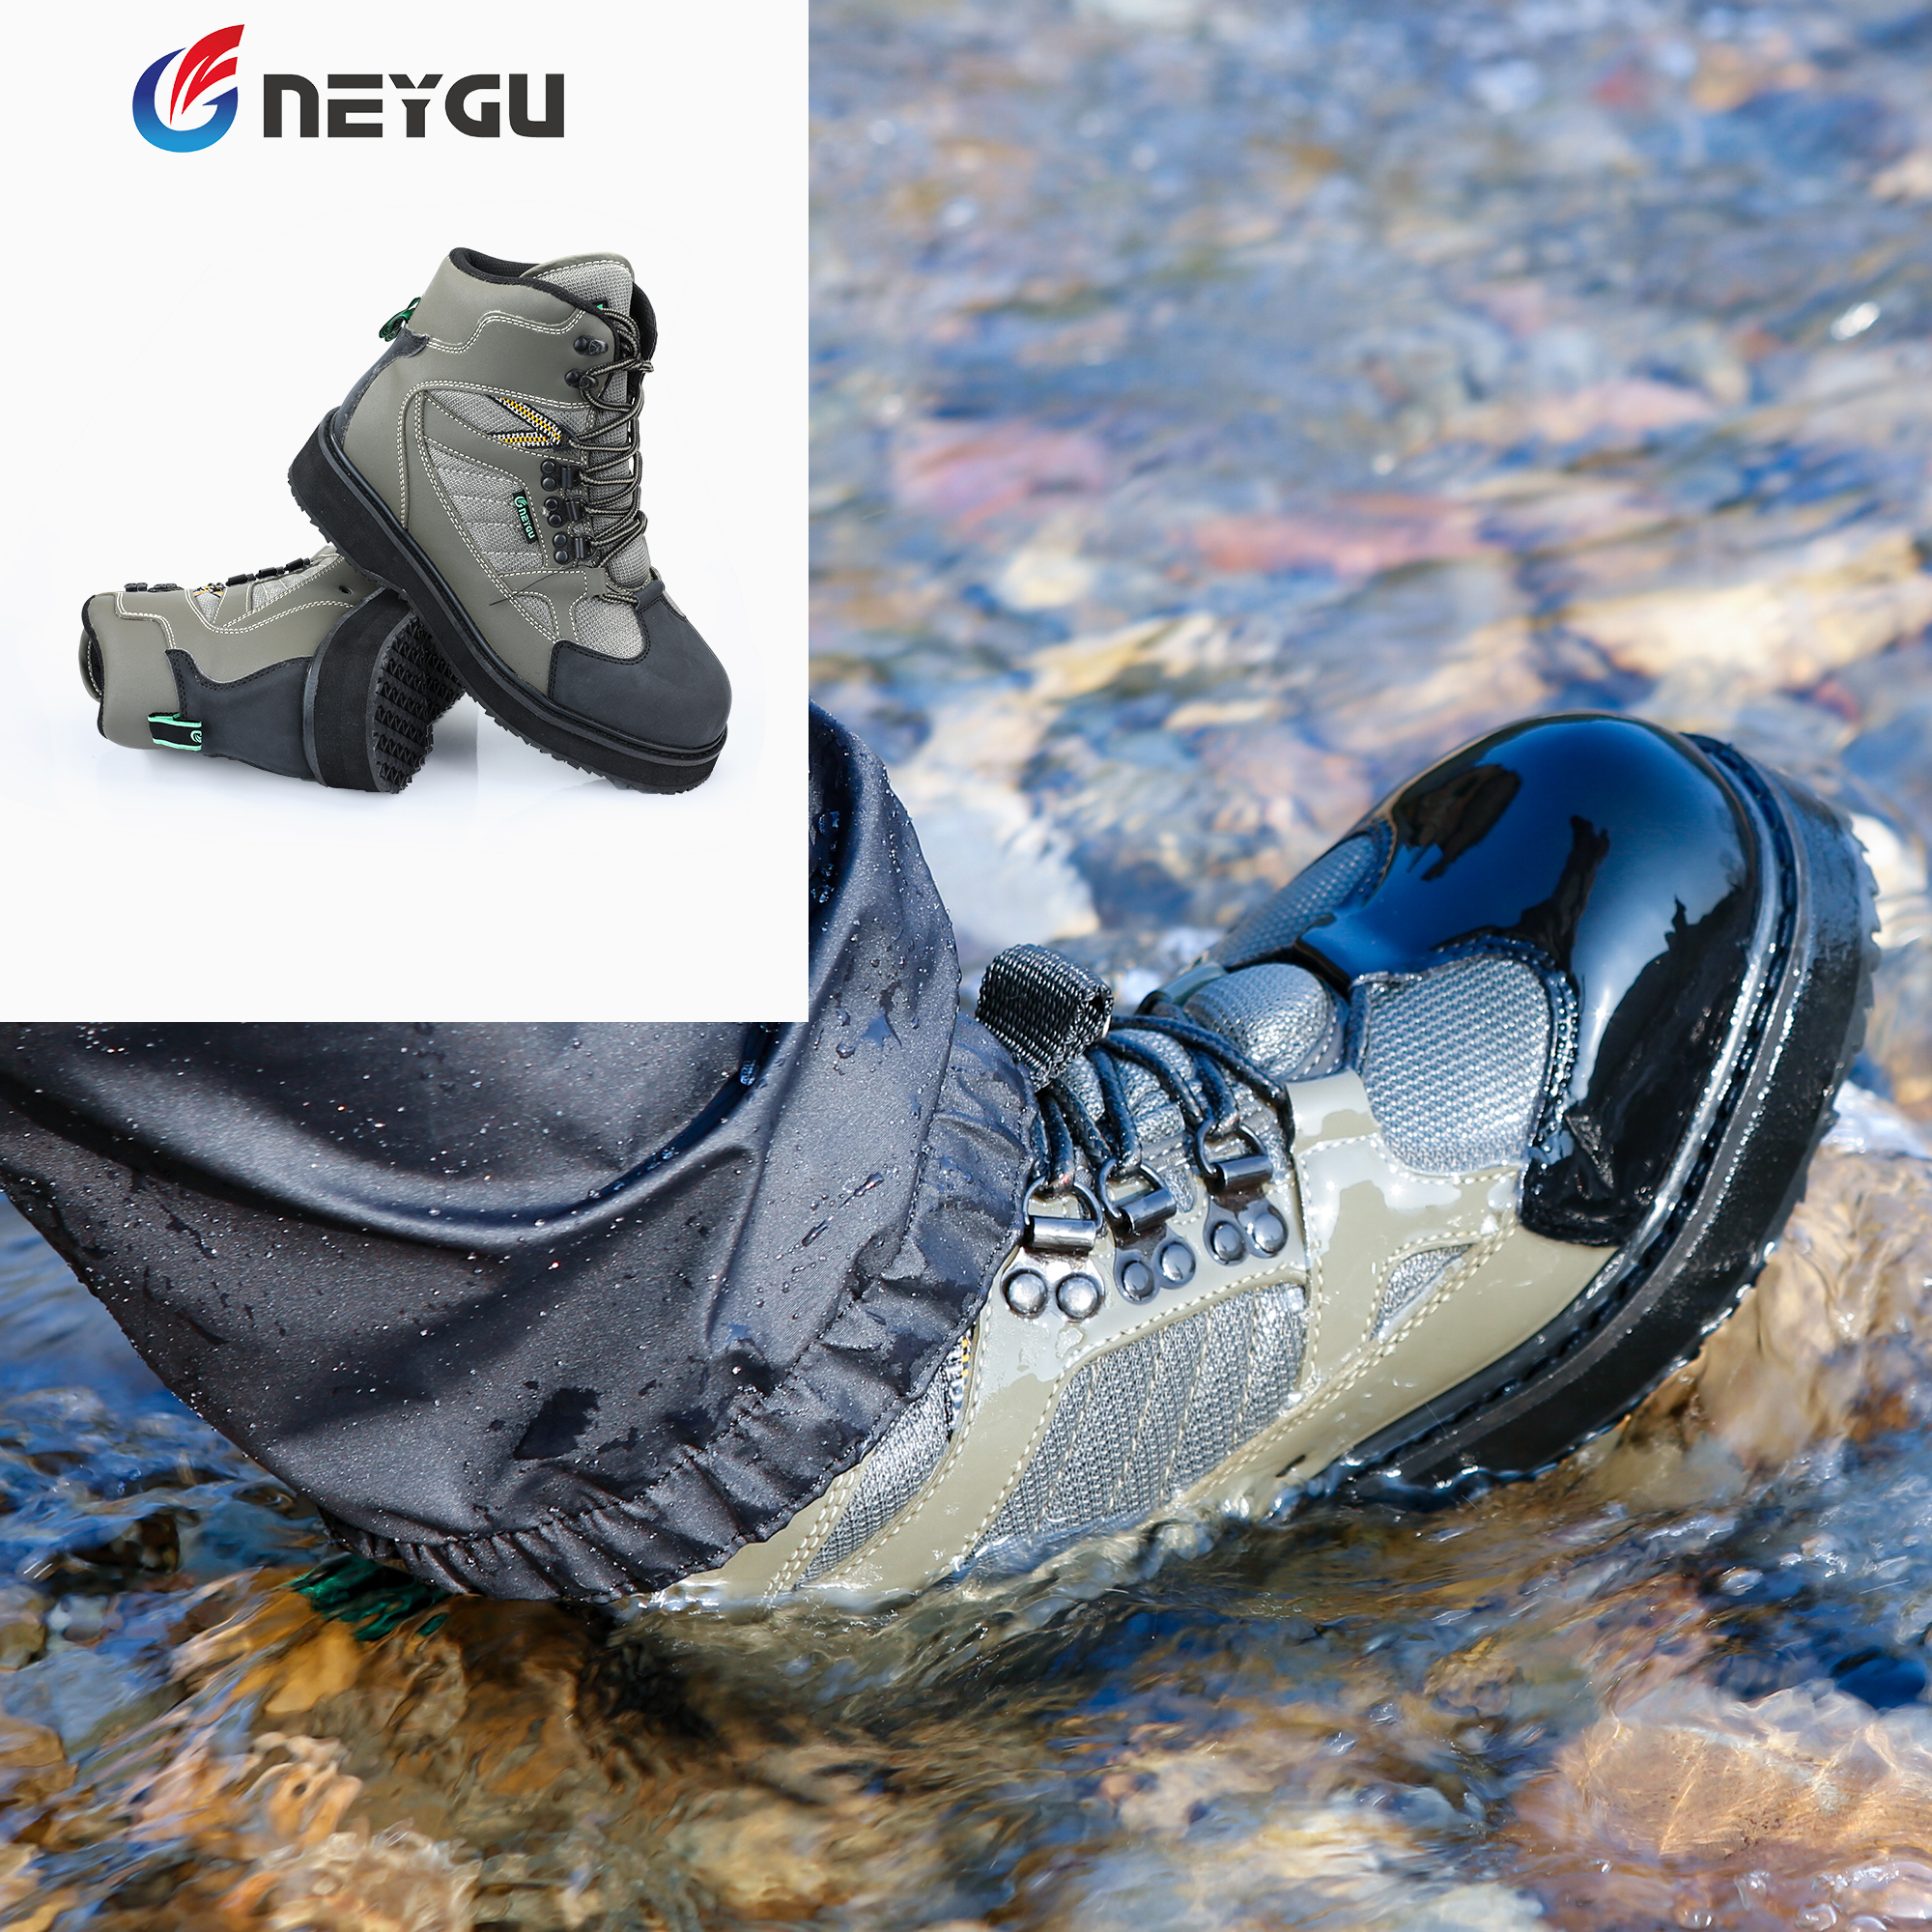 NEYGU fly fishing wading boots hard wearing wader shoes for hunting with felt sole suit for